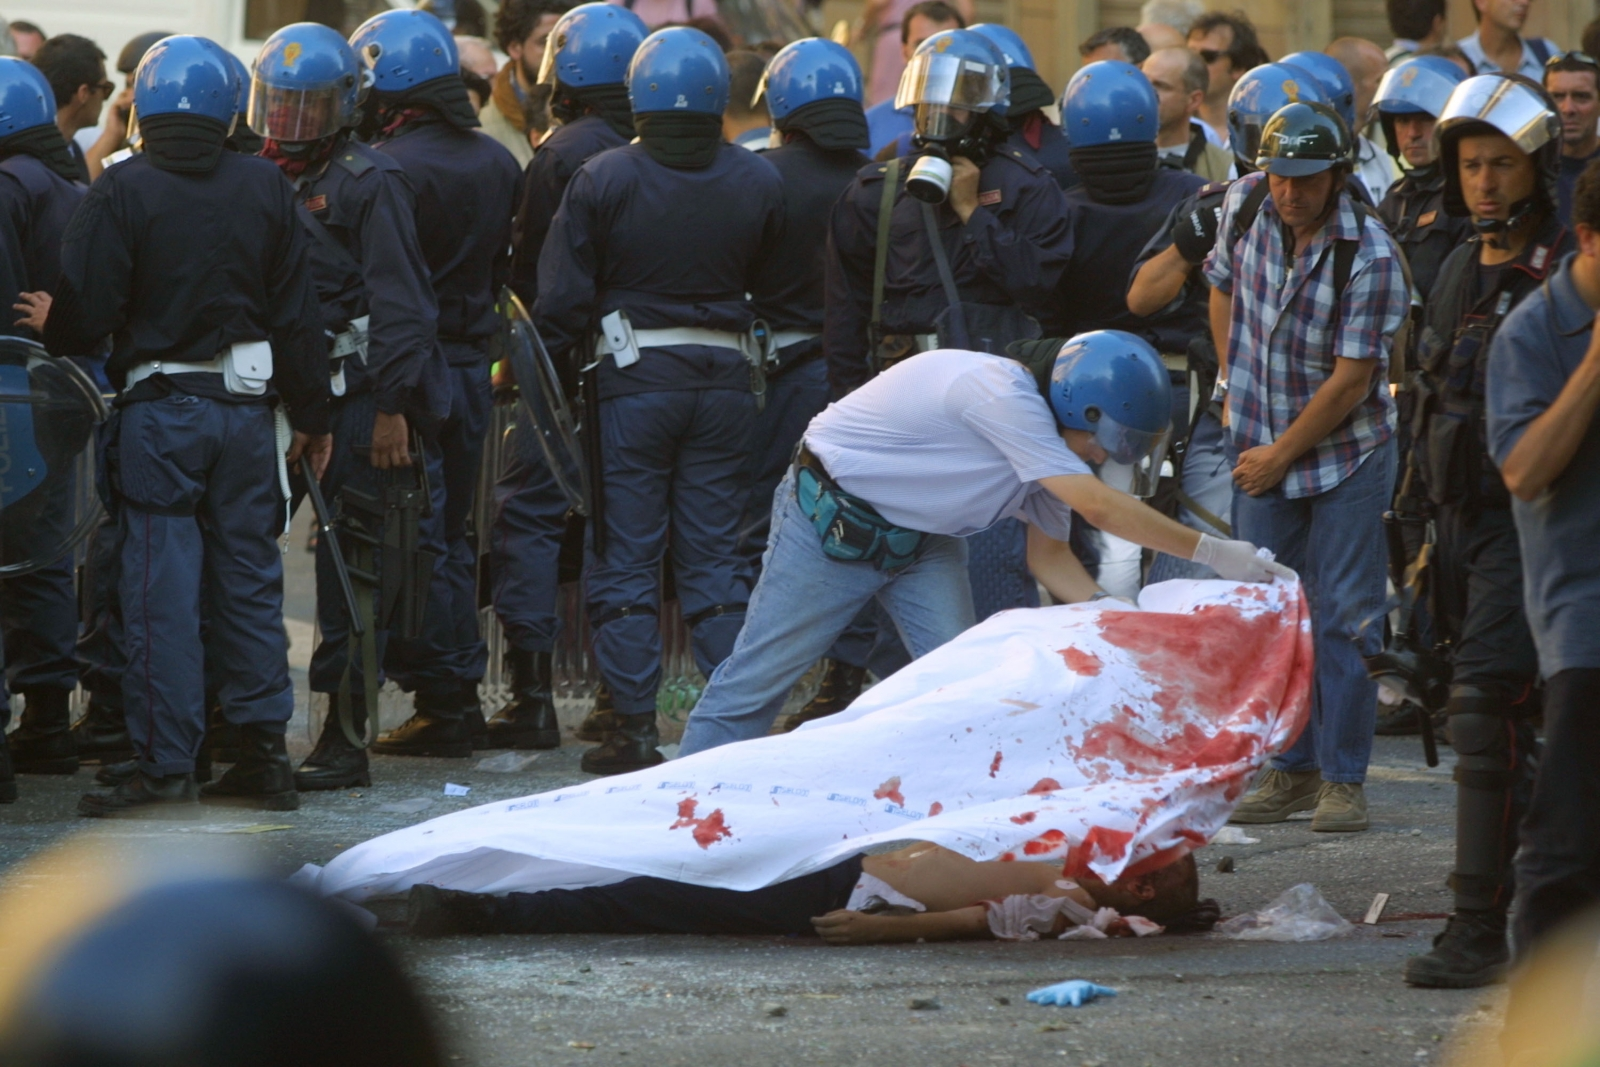 Italy admits to police brutality at Genoa G8 Summit and